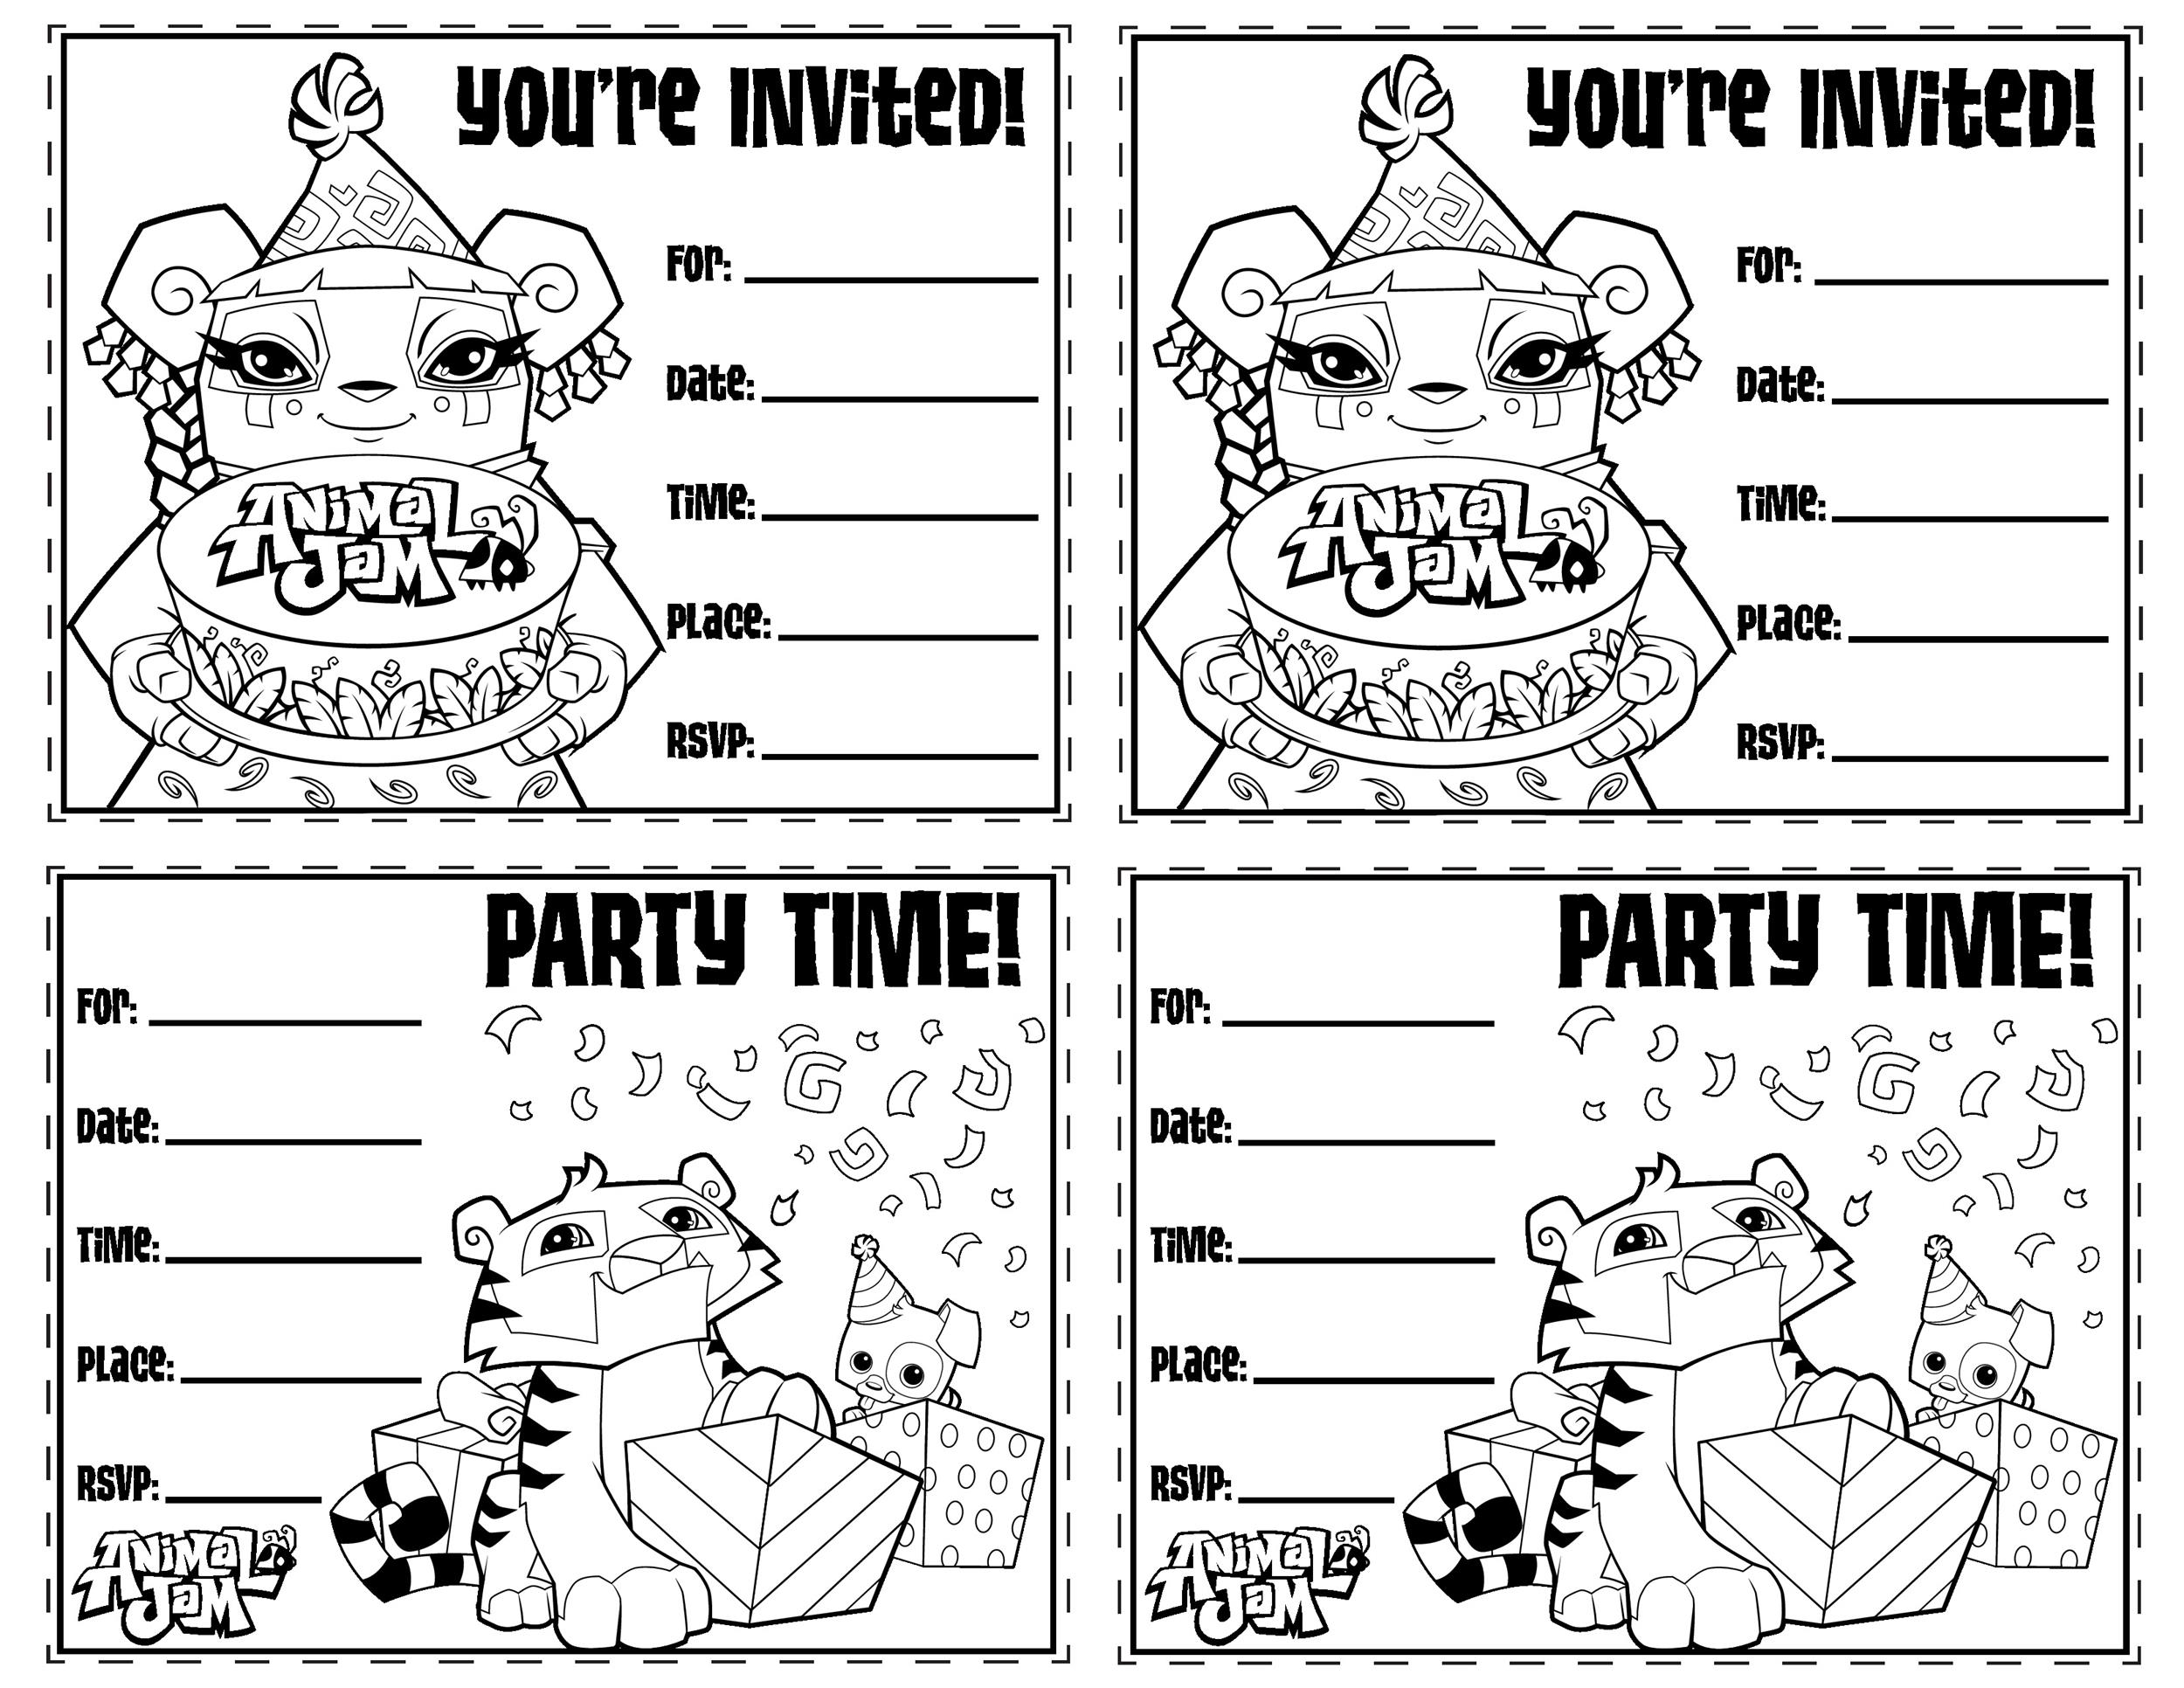 40 free birthday party invitation templates template lab free birthday invitation template 02 stopboris Images